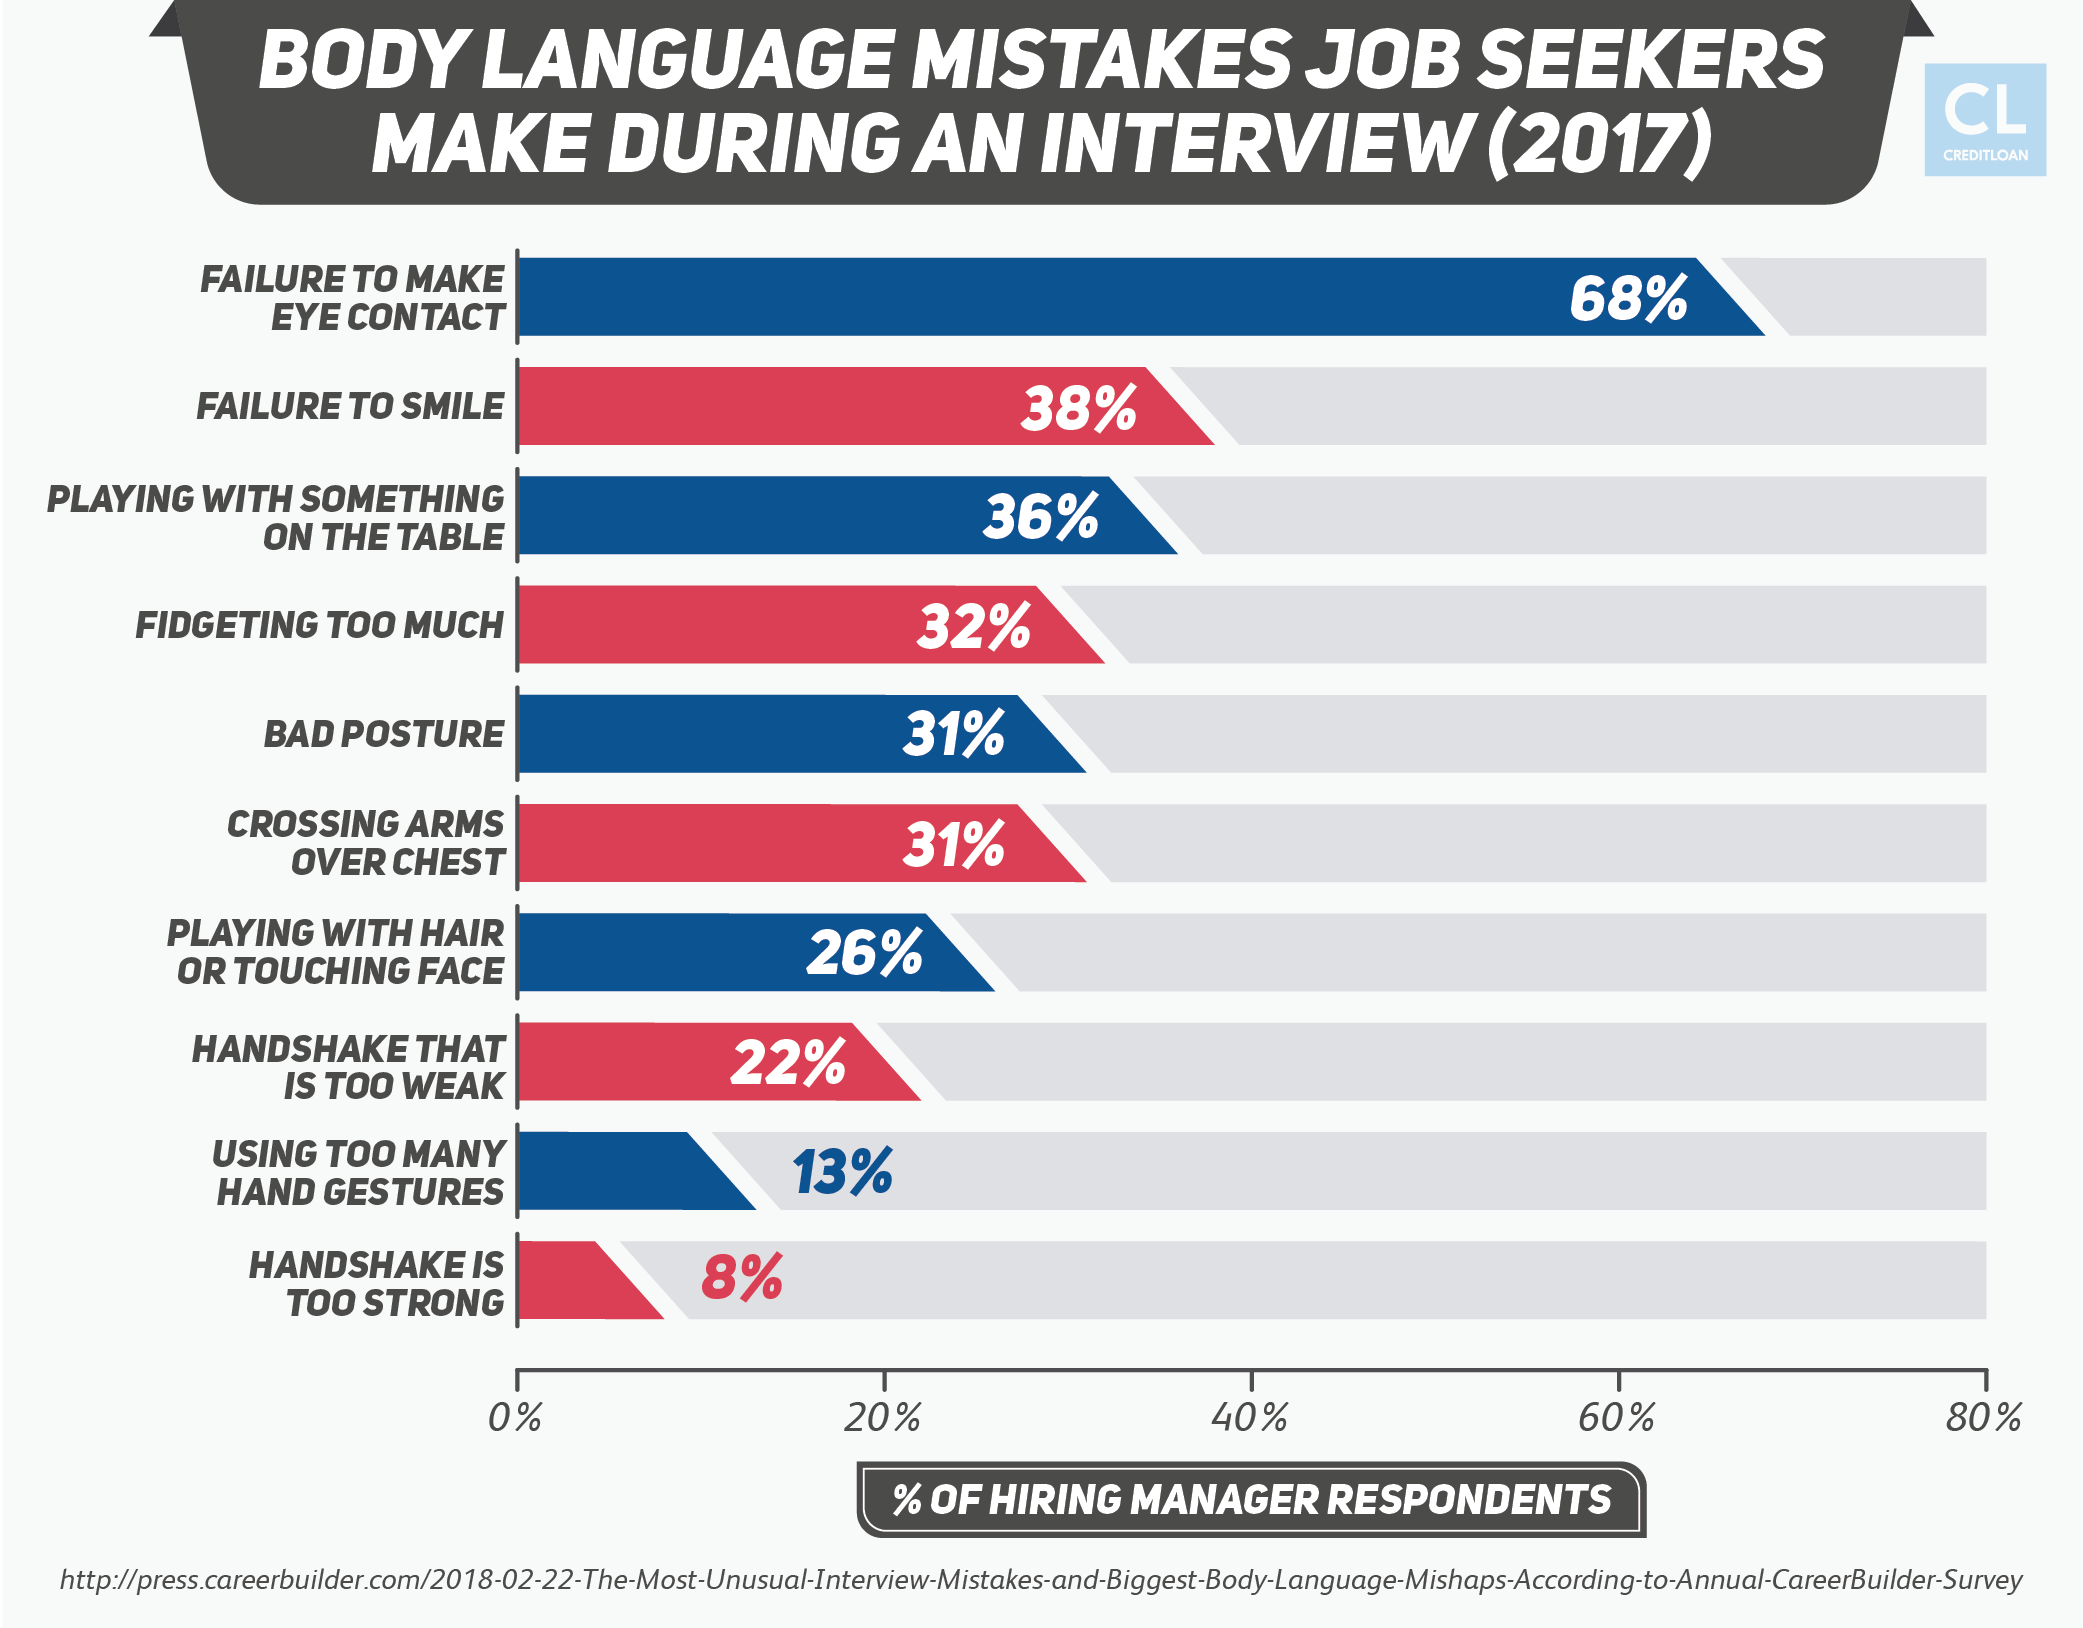 Body Language Mistakes Job Seekers Make During An Interview